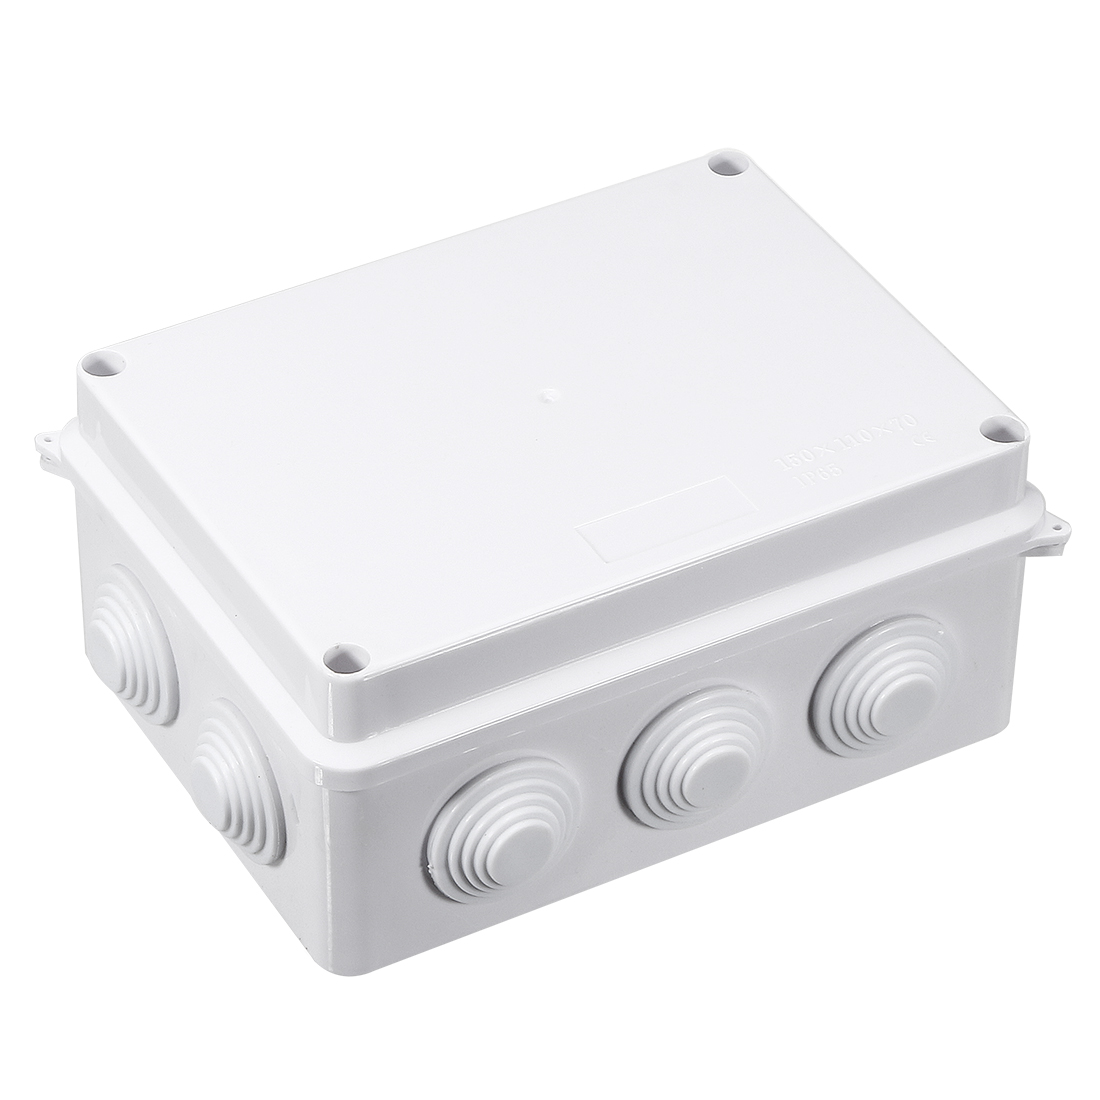 IP65 ABS Waterproof Sealed Electric Cable Junction Box 150x110x70mm